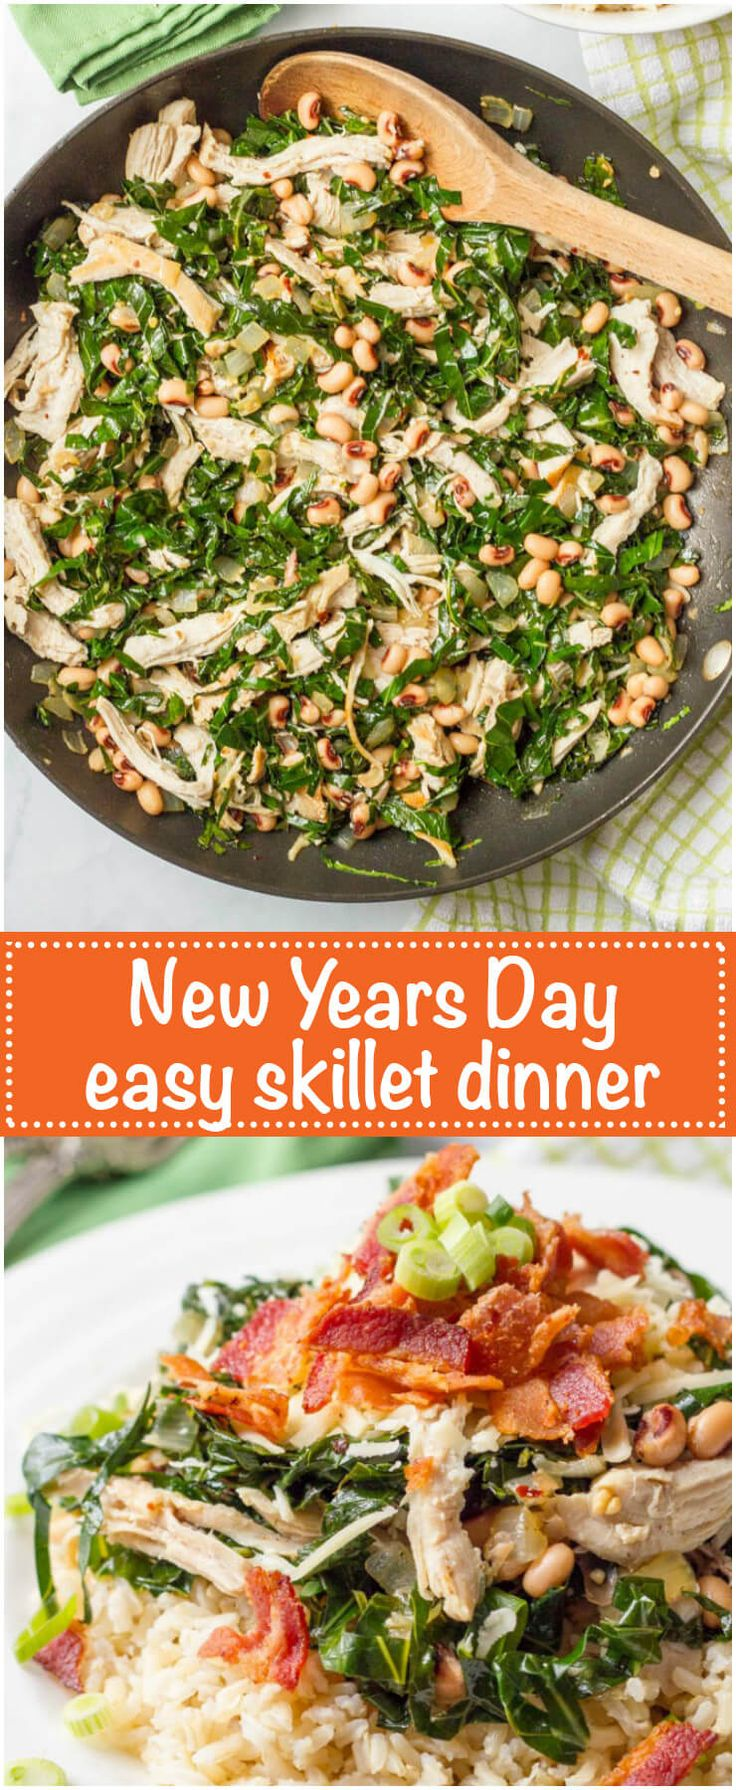 Southern New Year's Day dinner skillet Recipe